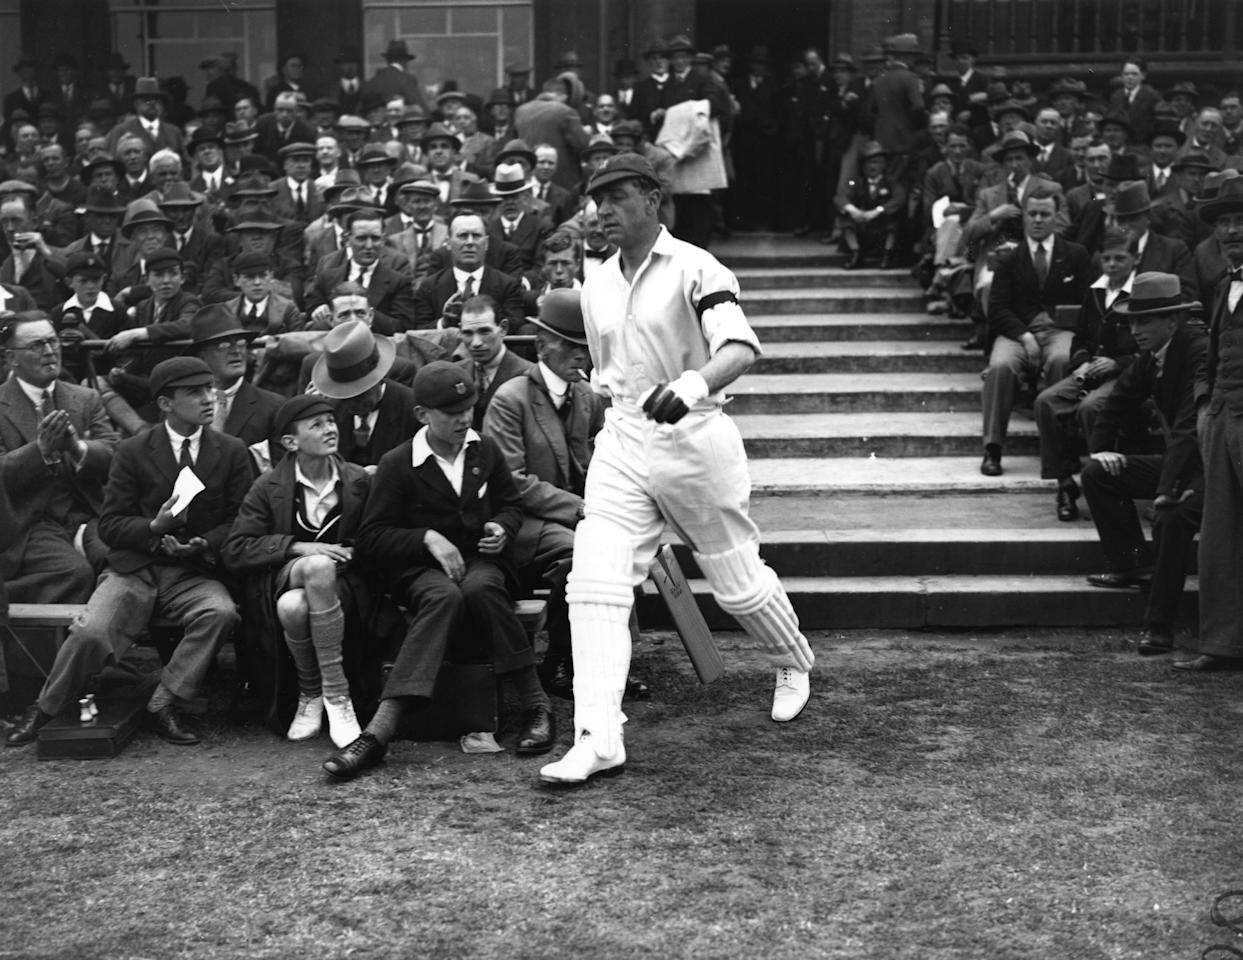 JUNE 1930:  WALLY HAMMOND OF THE MCC GOES OUT TO BAT AGAINST AUSTRALIA IN THE FIRST TEST MATCH AT NOTTINGHAM. (Photo by Central Press/Hulton Archive/Getty Images)